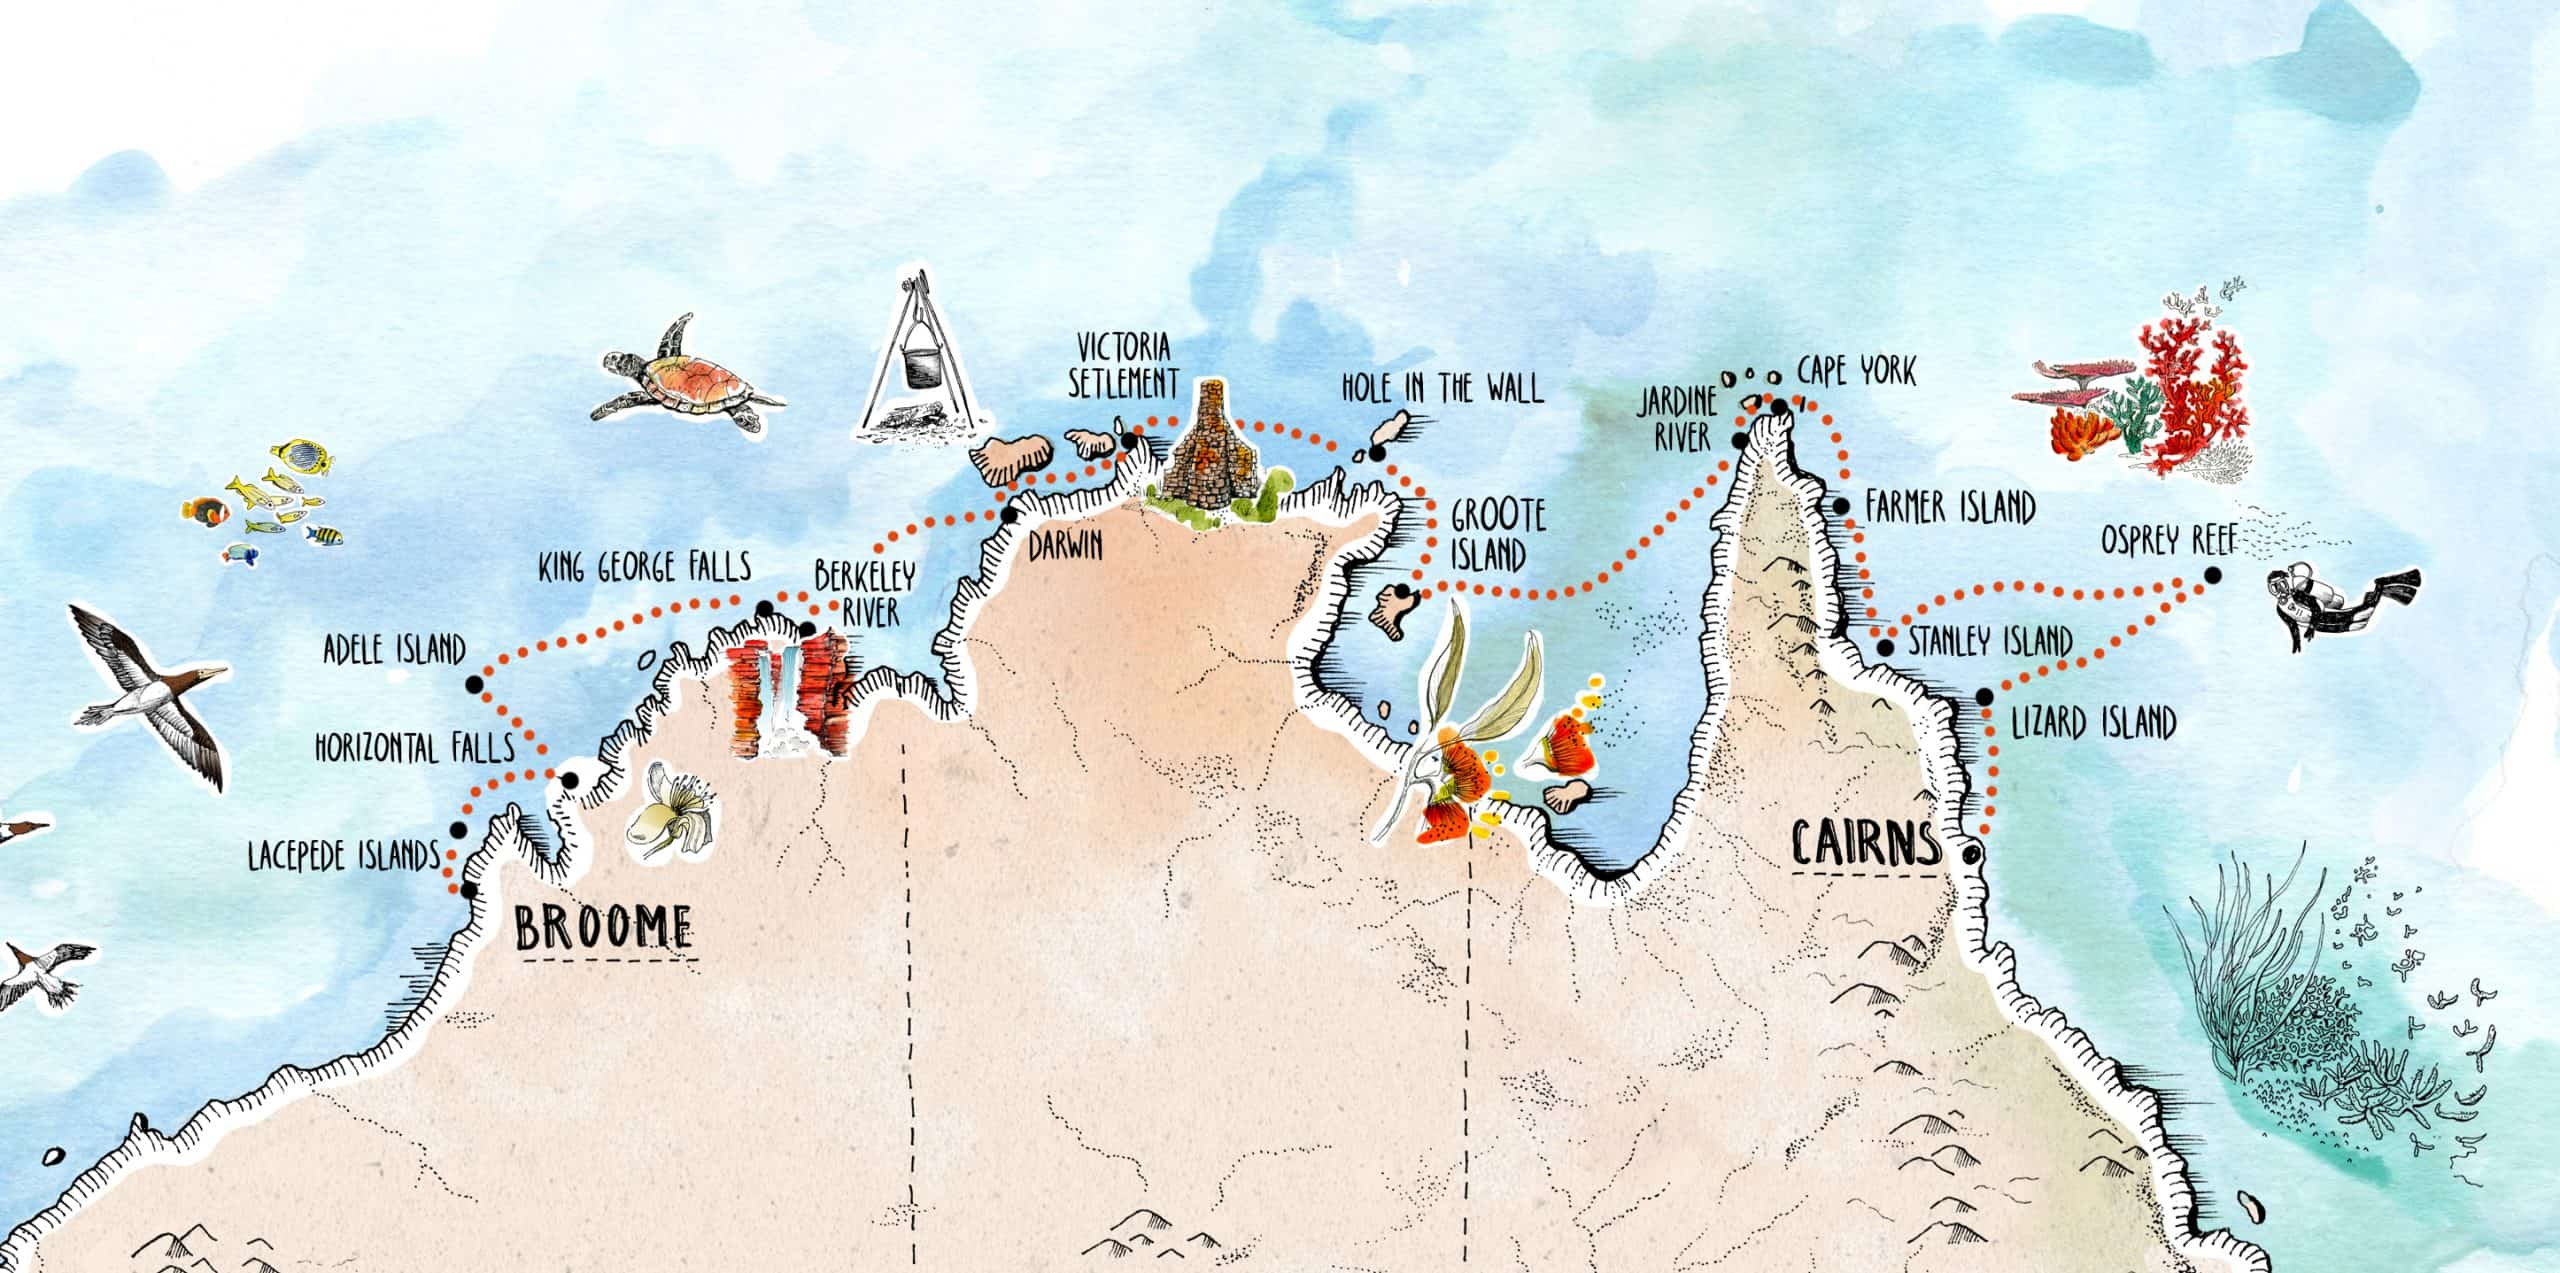 Across The Top Voyage Map Broome to Cairns 2022